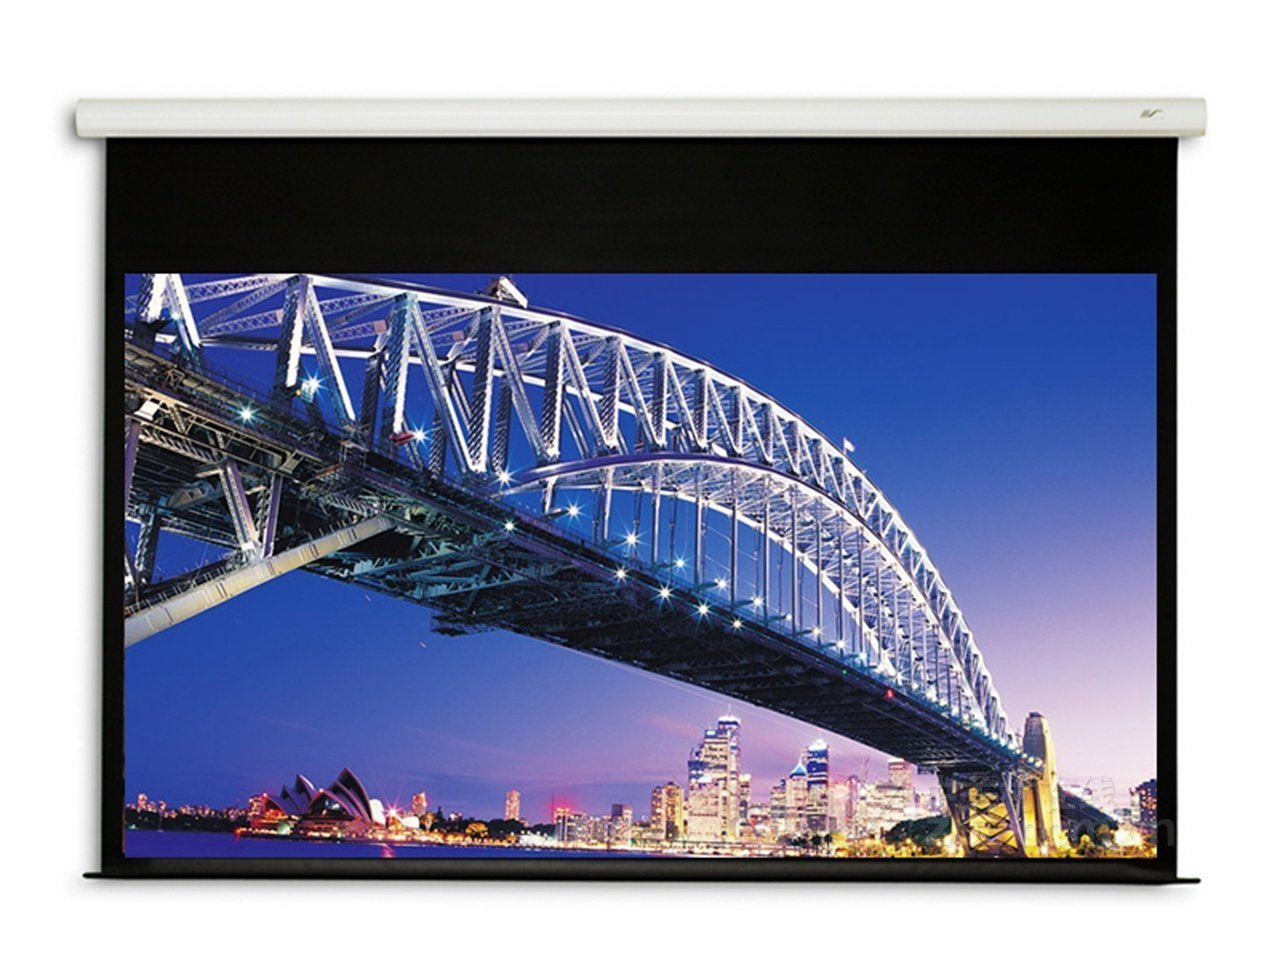 eGALAXY® 80 inch 16:9 ELECTRIC/MOTORIZED PROJECTOR SCREEN (MATTE WHITE) PSE80A eGalaxy®